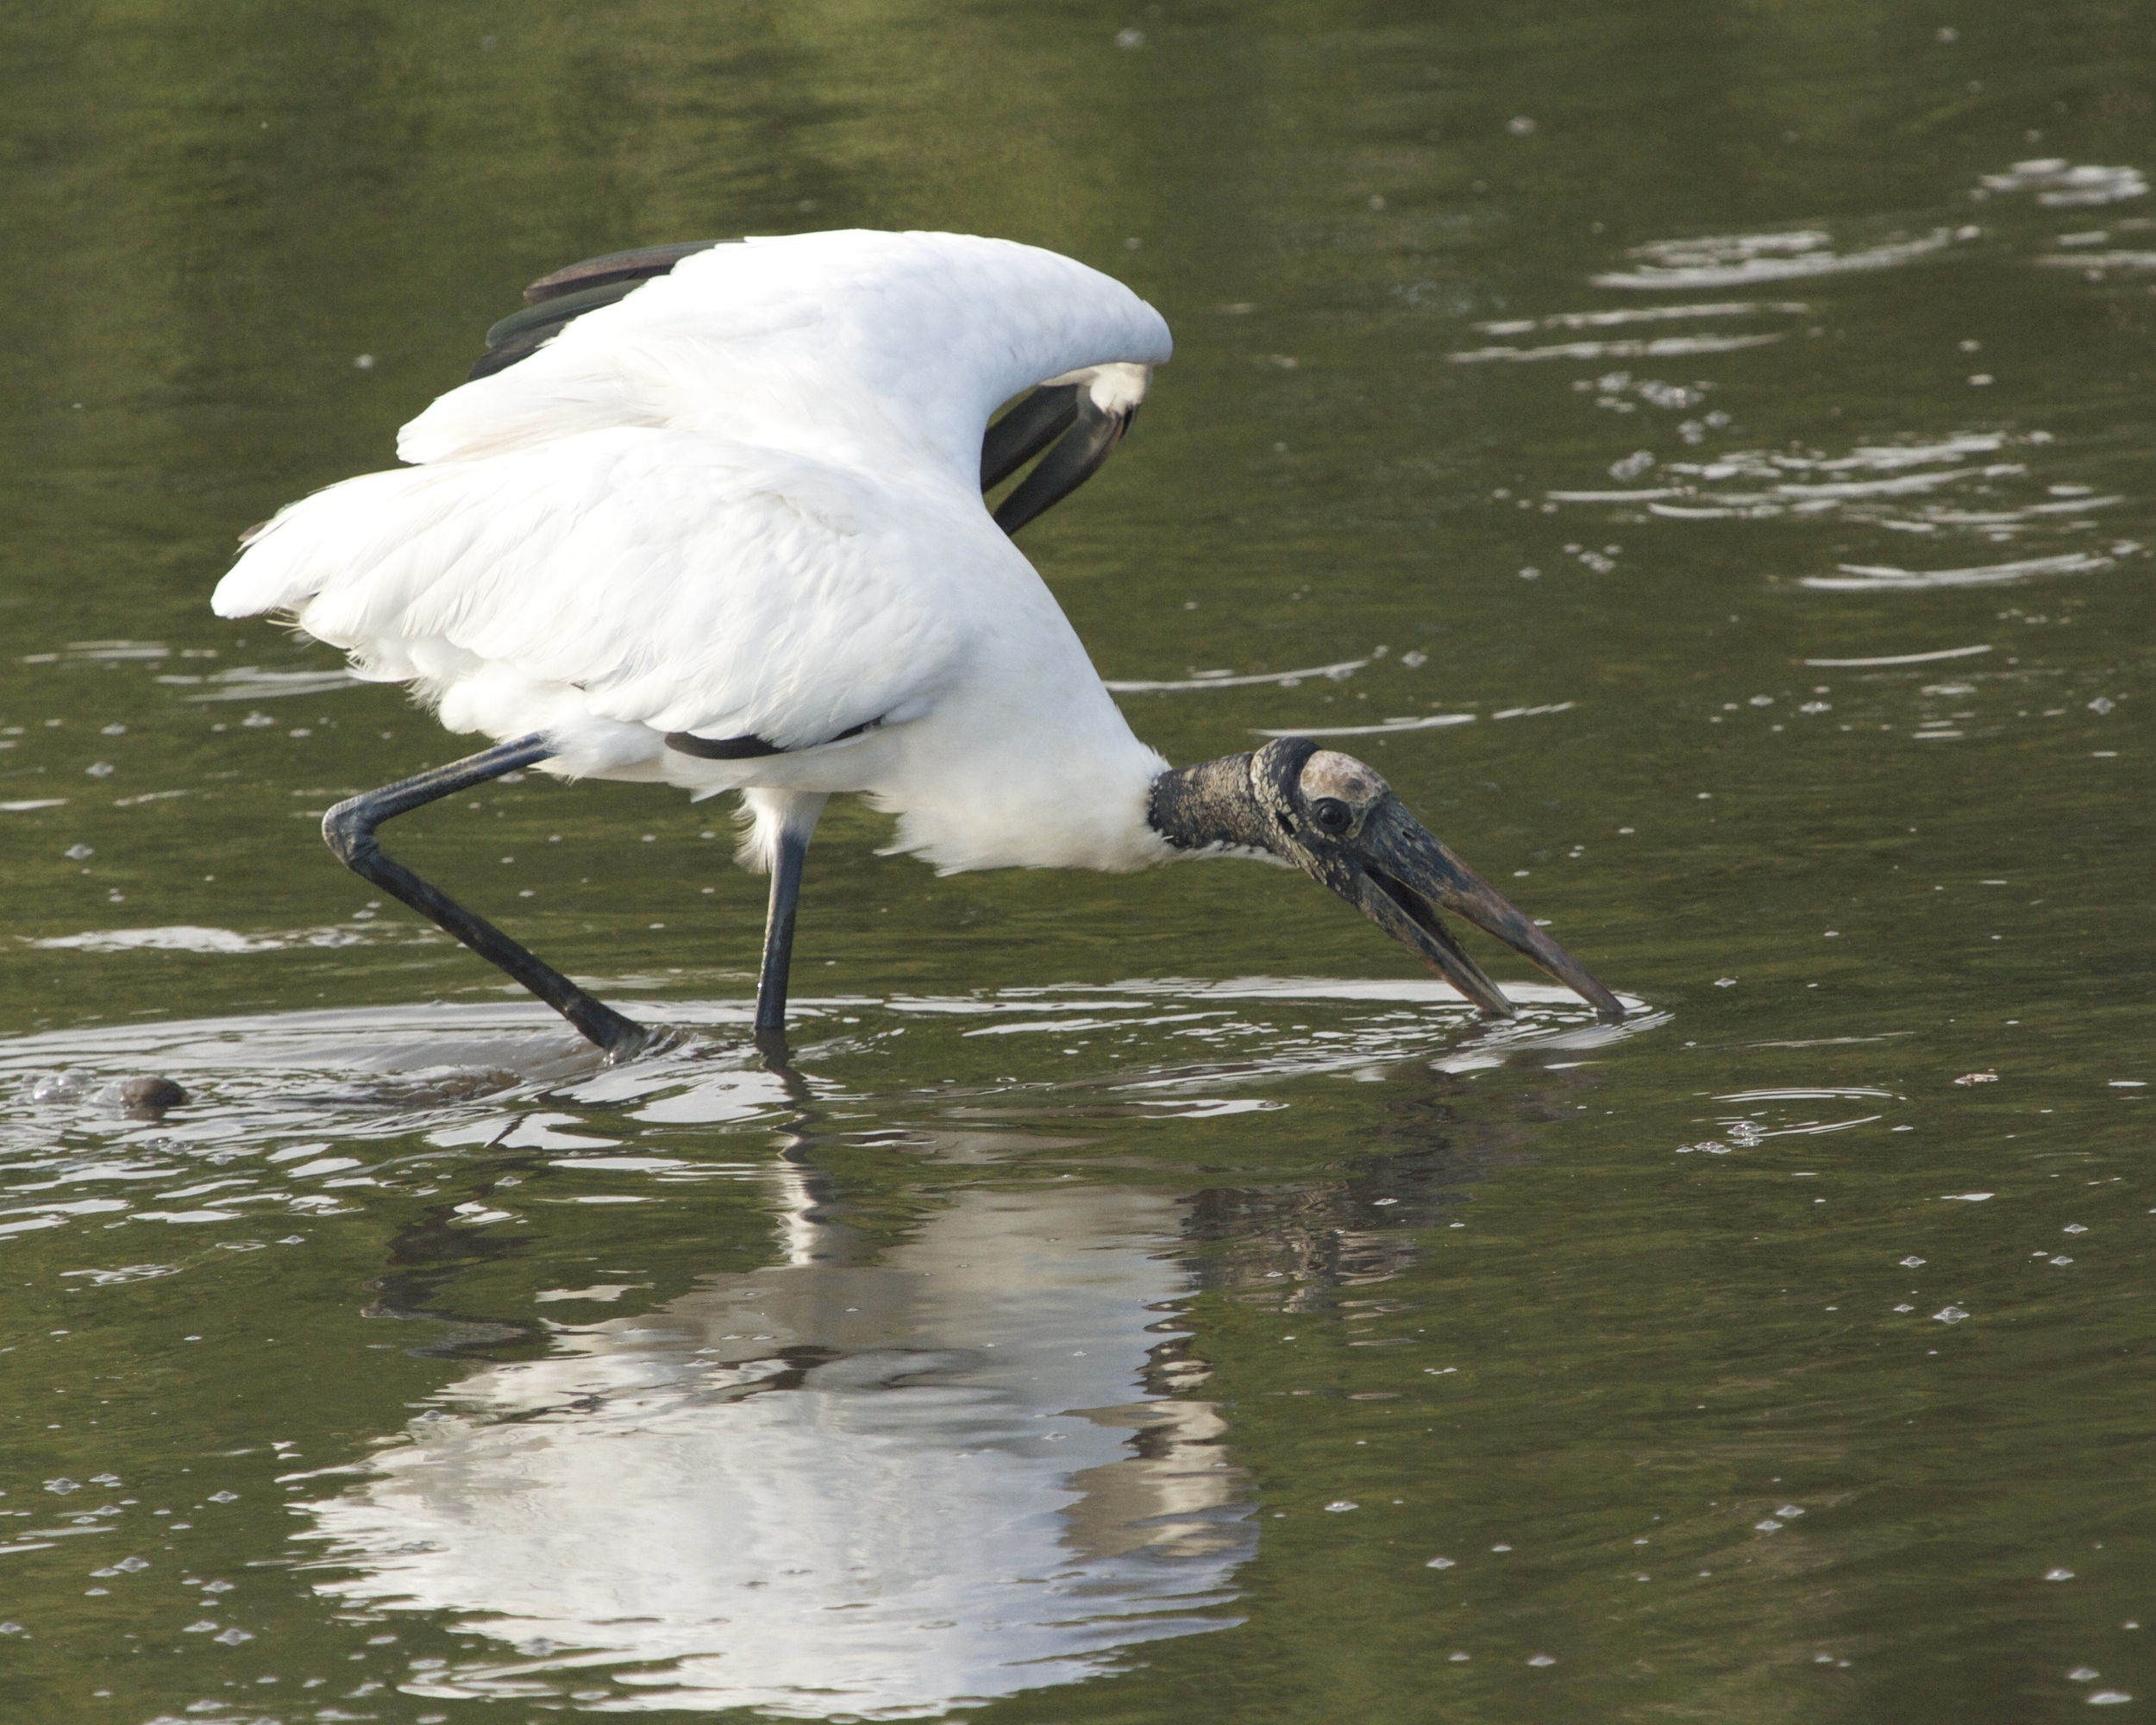 The Wood Stork uses its wing to help see and scare fish into its waiting beak.